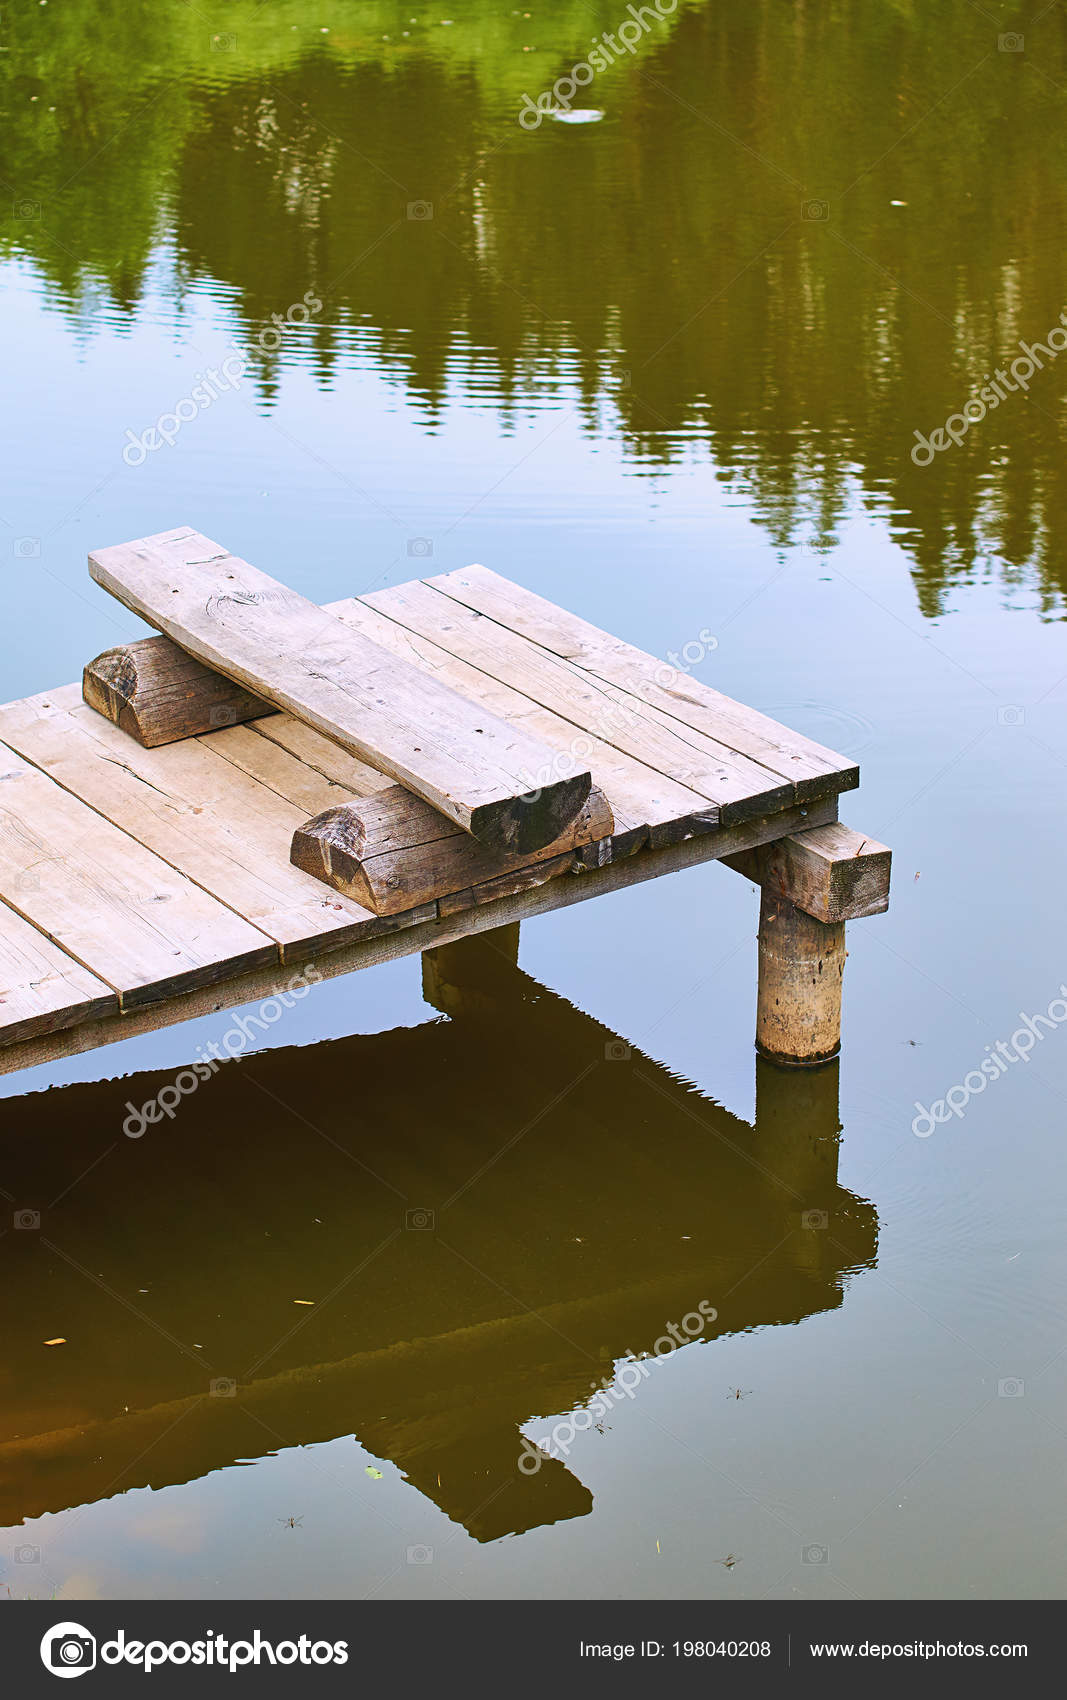 Cozy fishing bench on a wooden pier at the shore of a calm